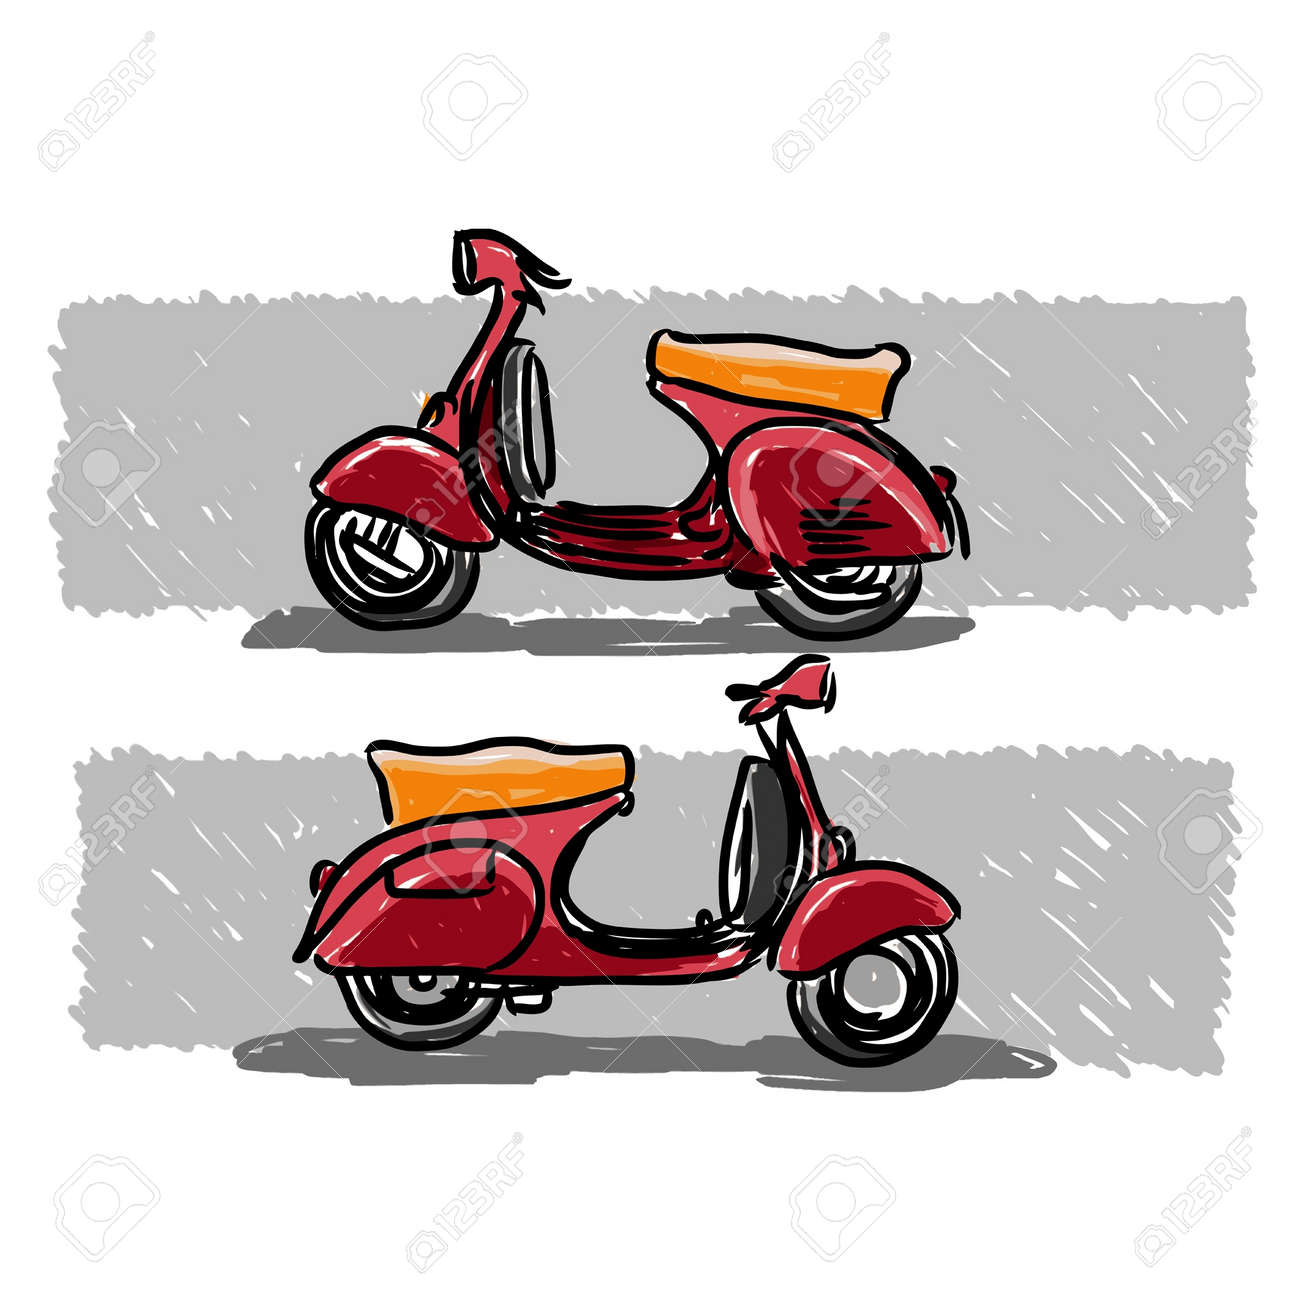 Scooter classic style, illustration. Stock Vector - 14040004